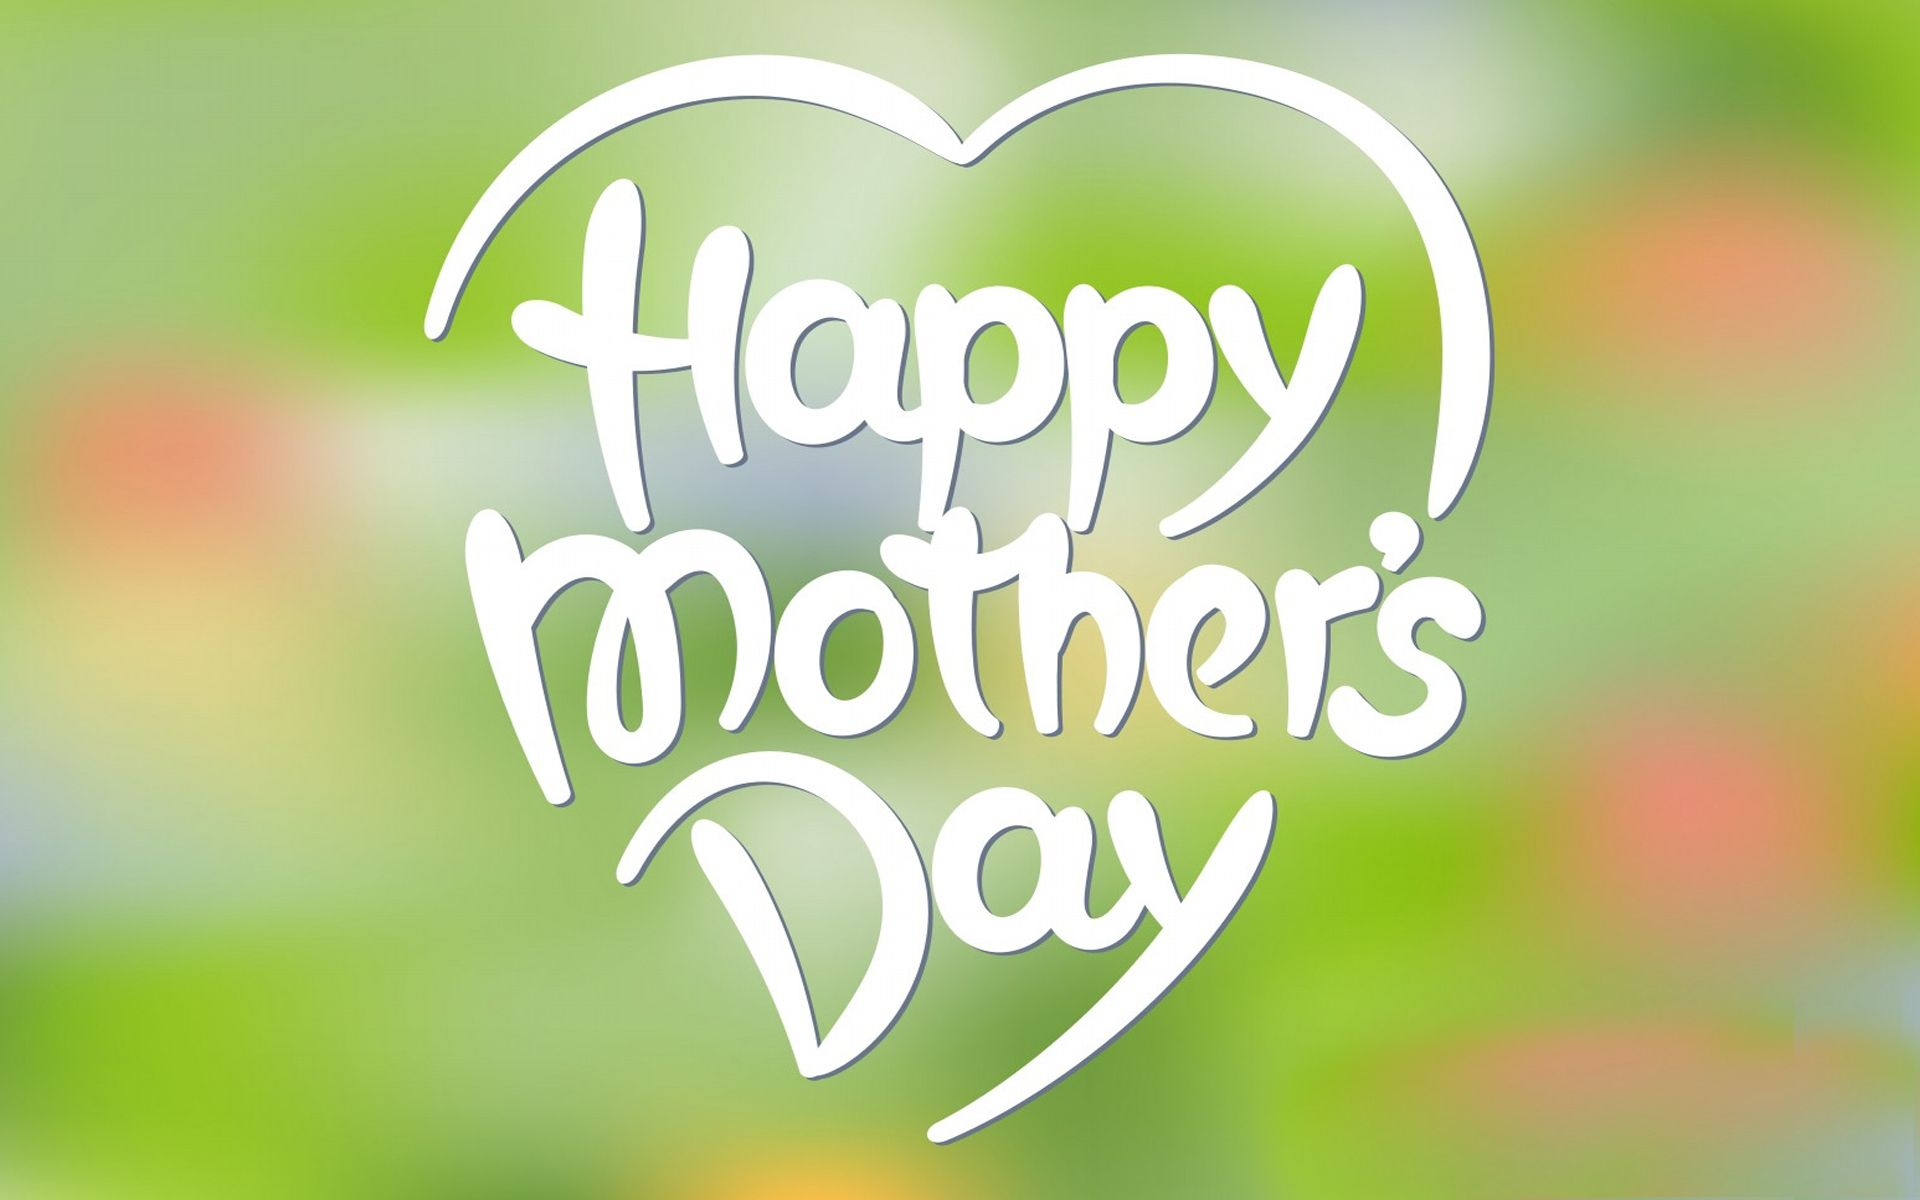 Mothers Day Images In Hindi Mother S Day Card Images Mother S Day Wishes Images Happy Mothers Day Wishes Happy Mothers Day Wallpaper Happy Mothers Day Messages